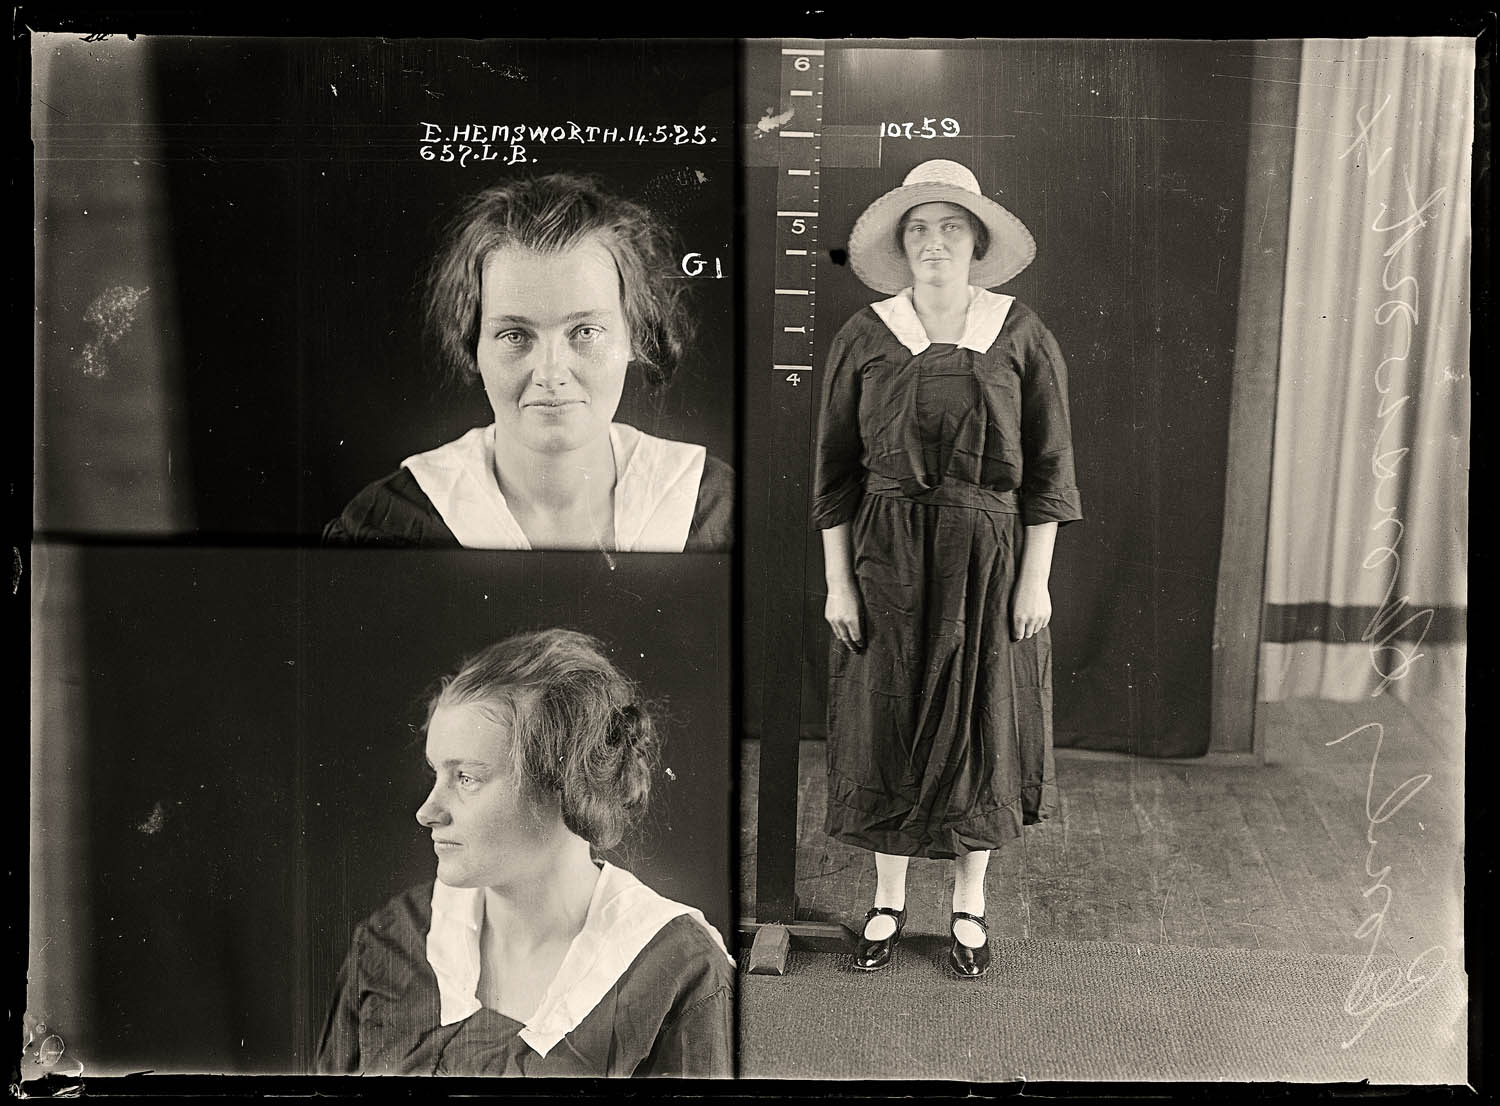 Emily Gertrude Hemsworth, criminal record number 657LB, 14 May 1925. State Reformatory for Women, Long Bay, NSW